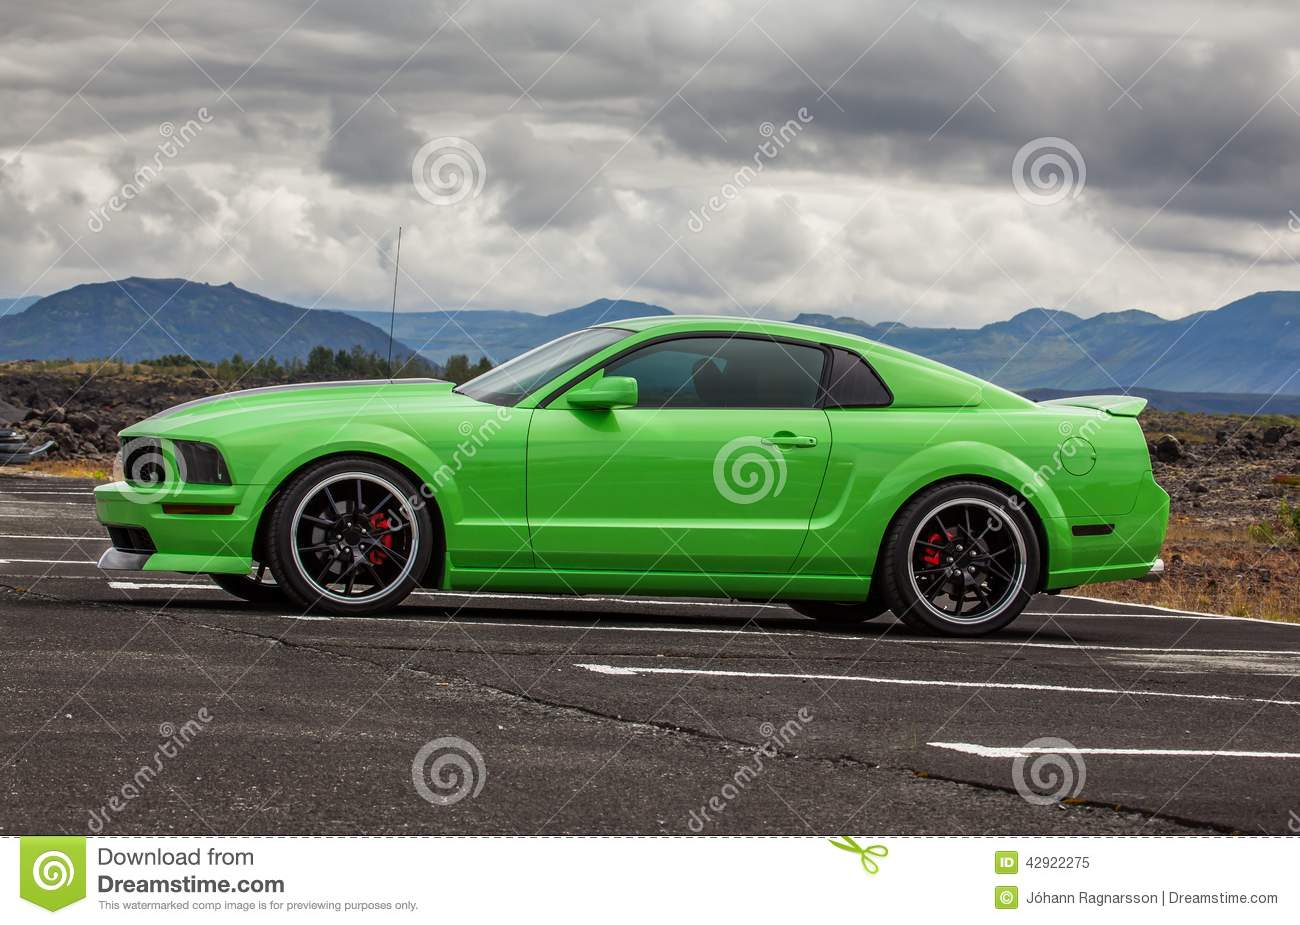 2006 Ford Mustang Gt Stock Image Of Concrete America 42922275